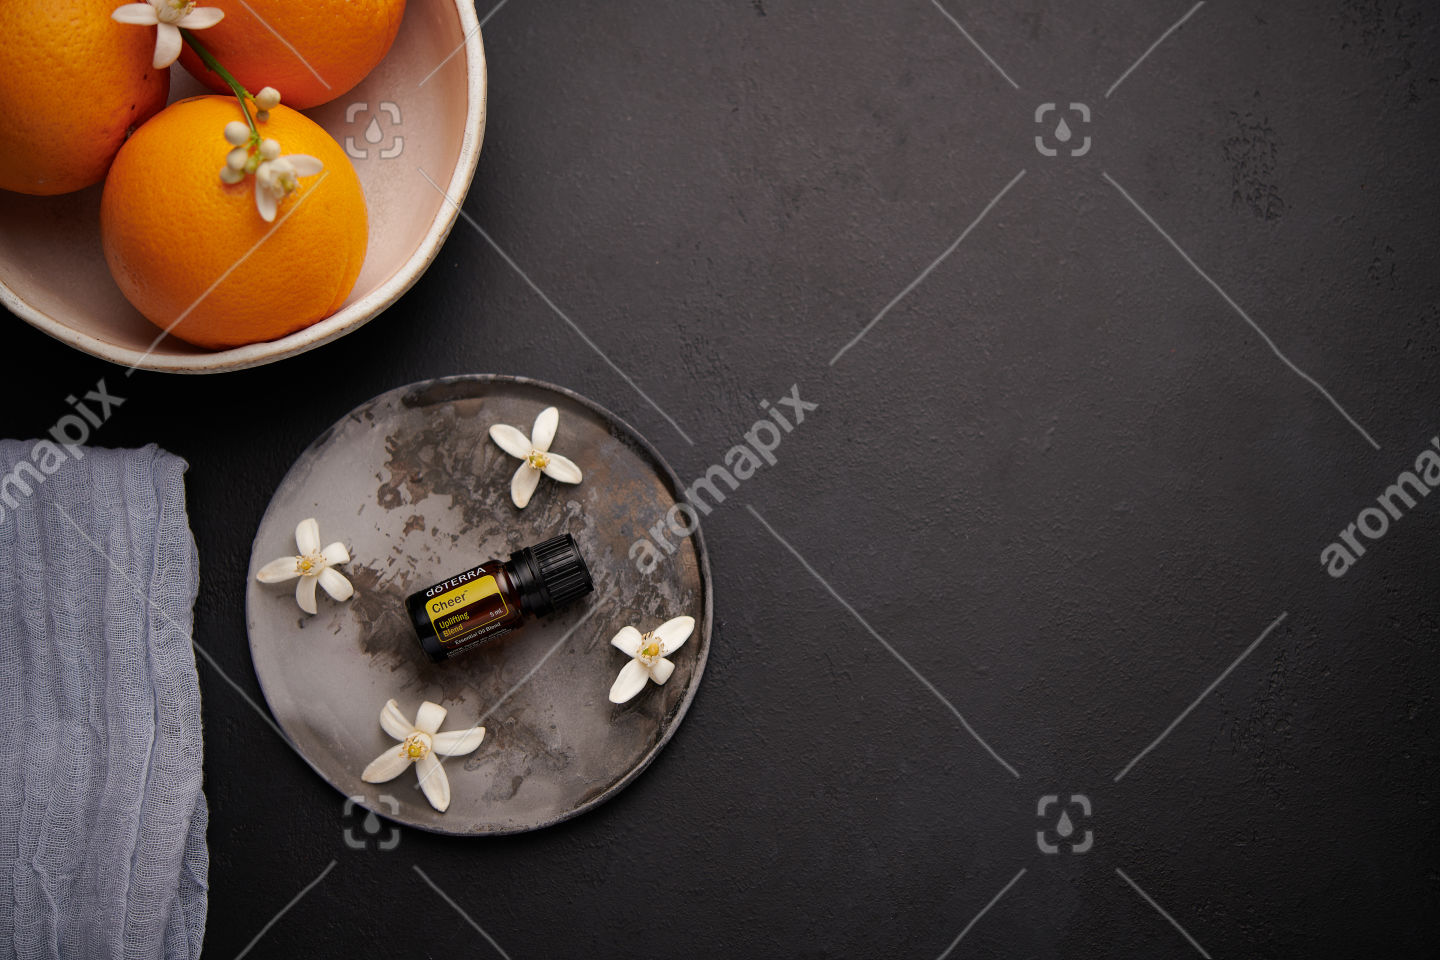 doTERRA Cheer with orange blossoms on black